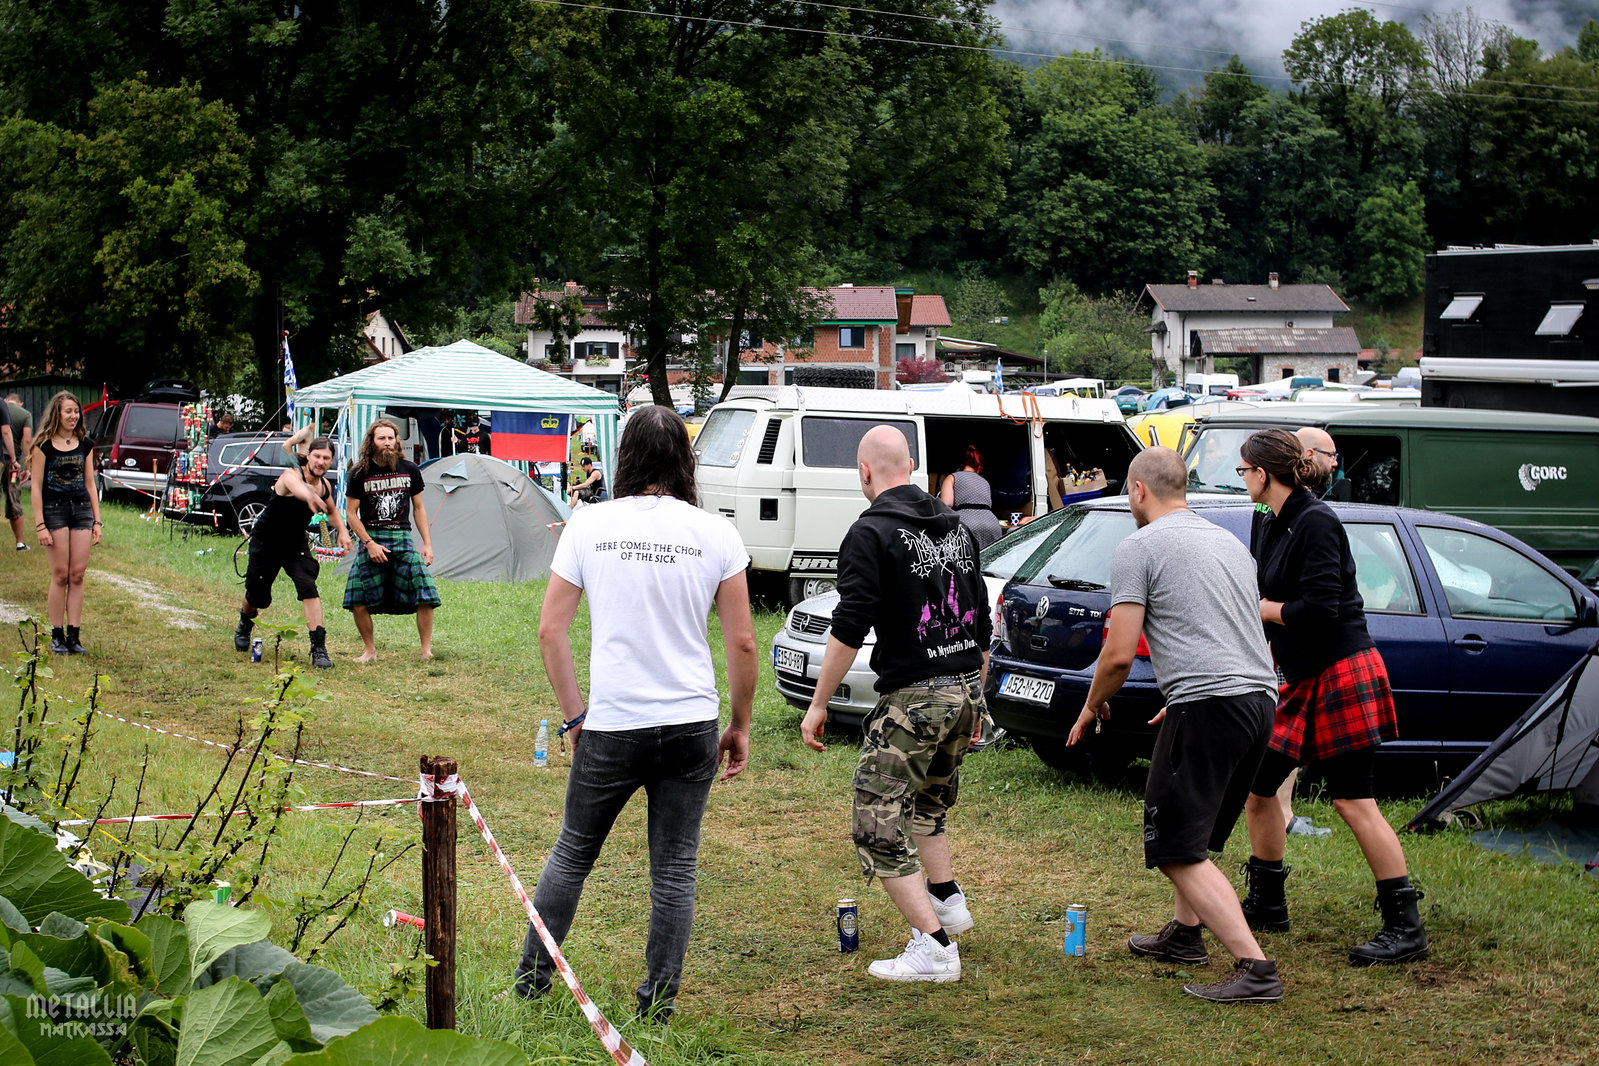 metaldays 2017, metaldays, tolmin, slovenia, metal festivals in europe, german drinking games